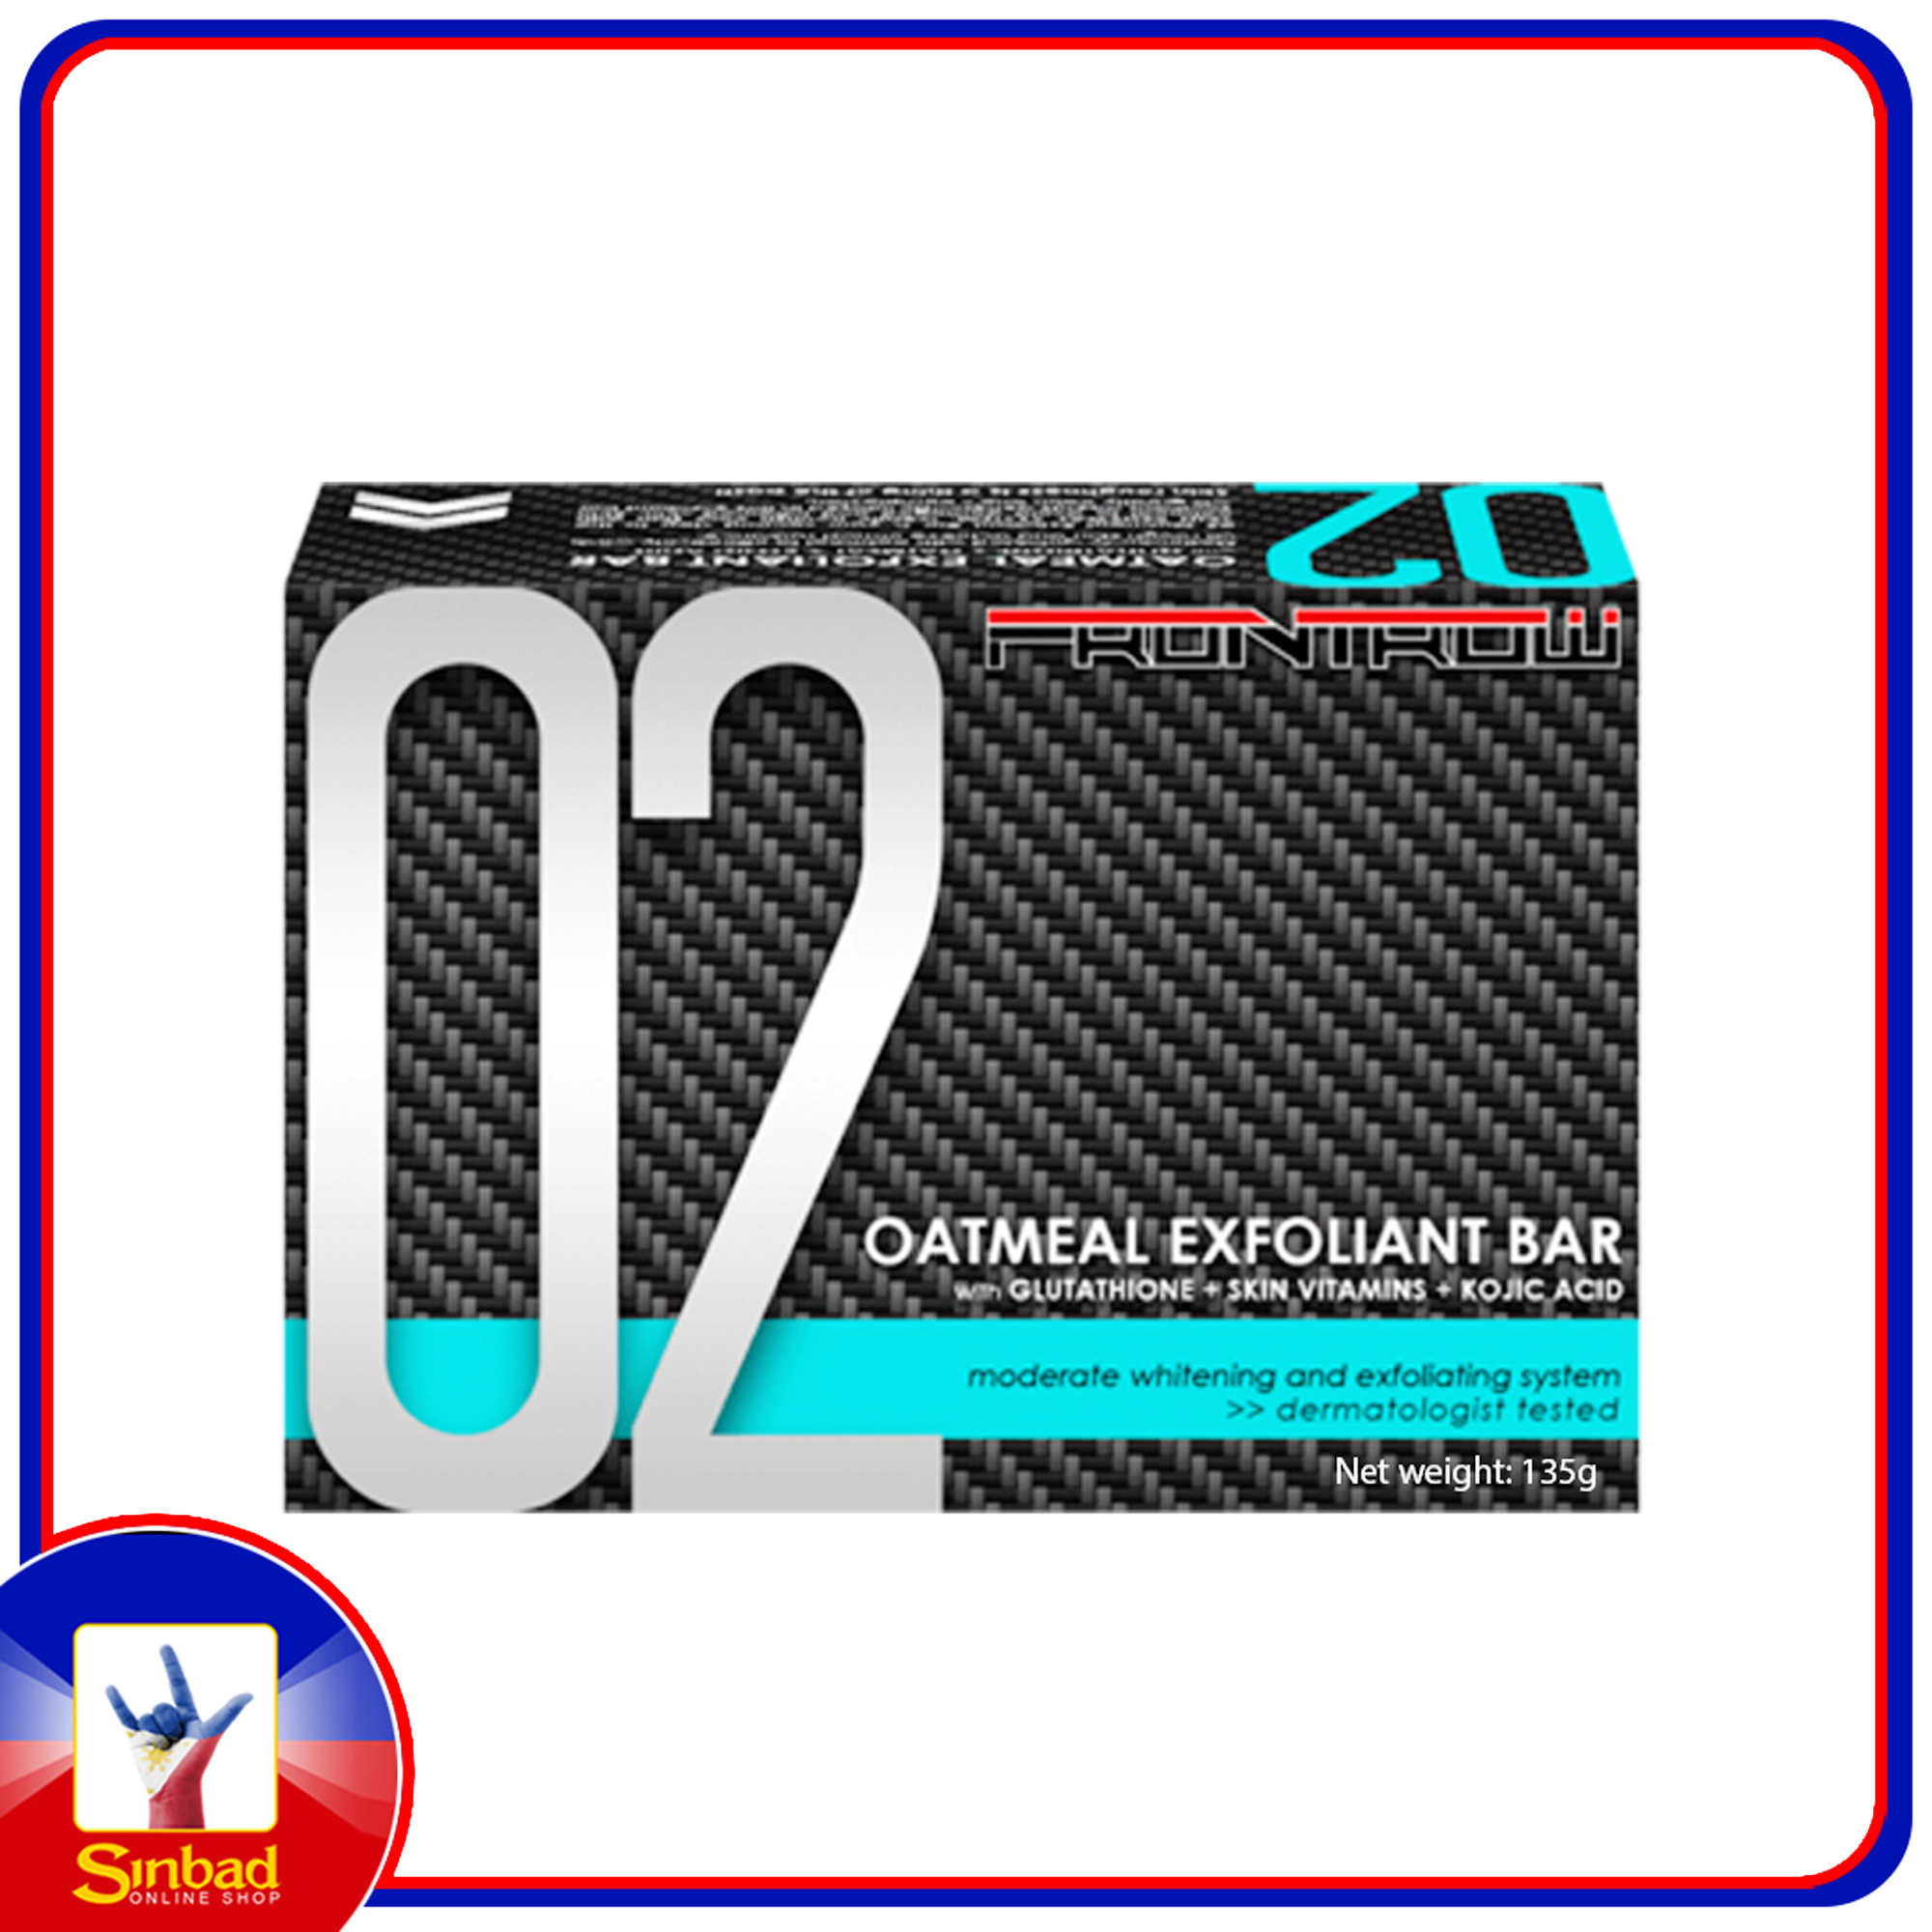 FrontRow 02 Oatmeal Exfoliant Bar with Glutathione + Oatmeal + Kojic Acid